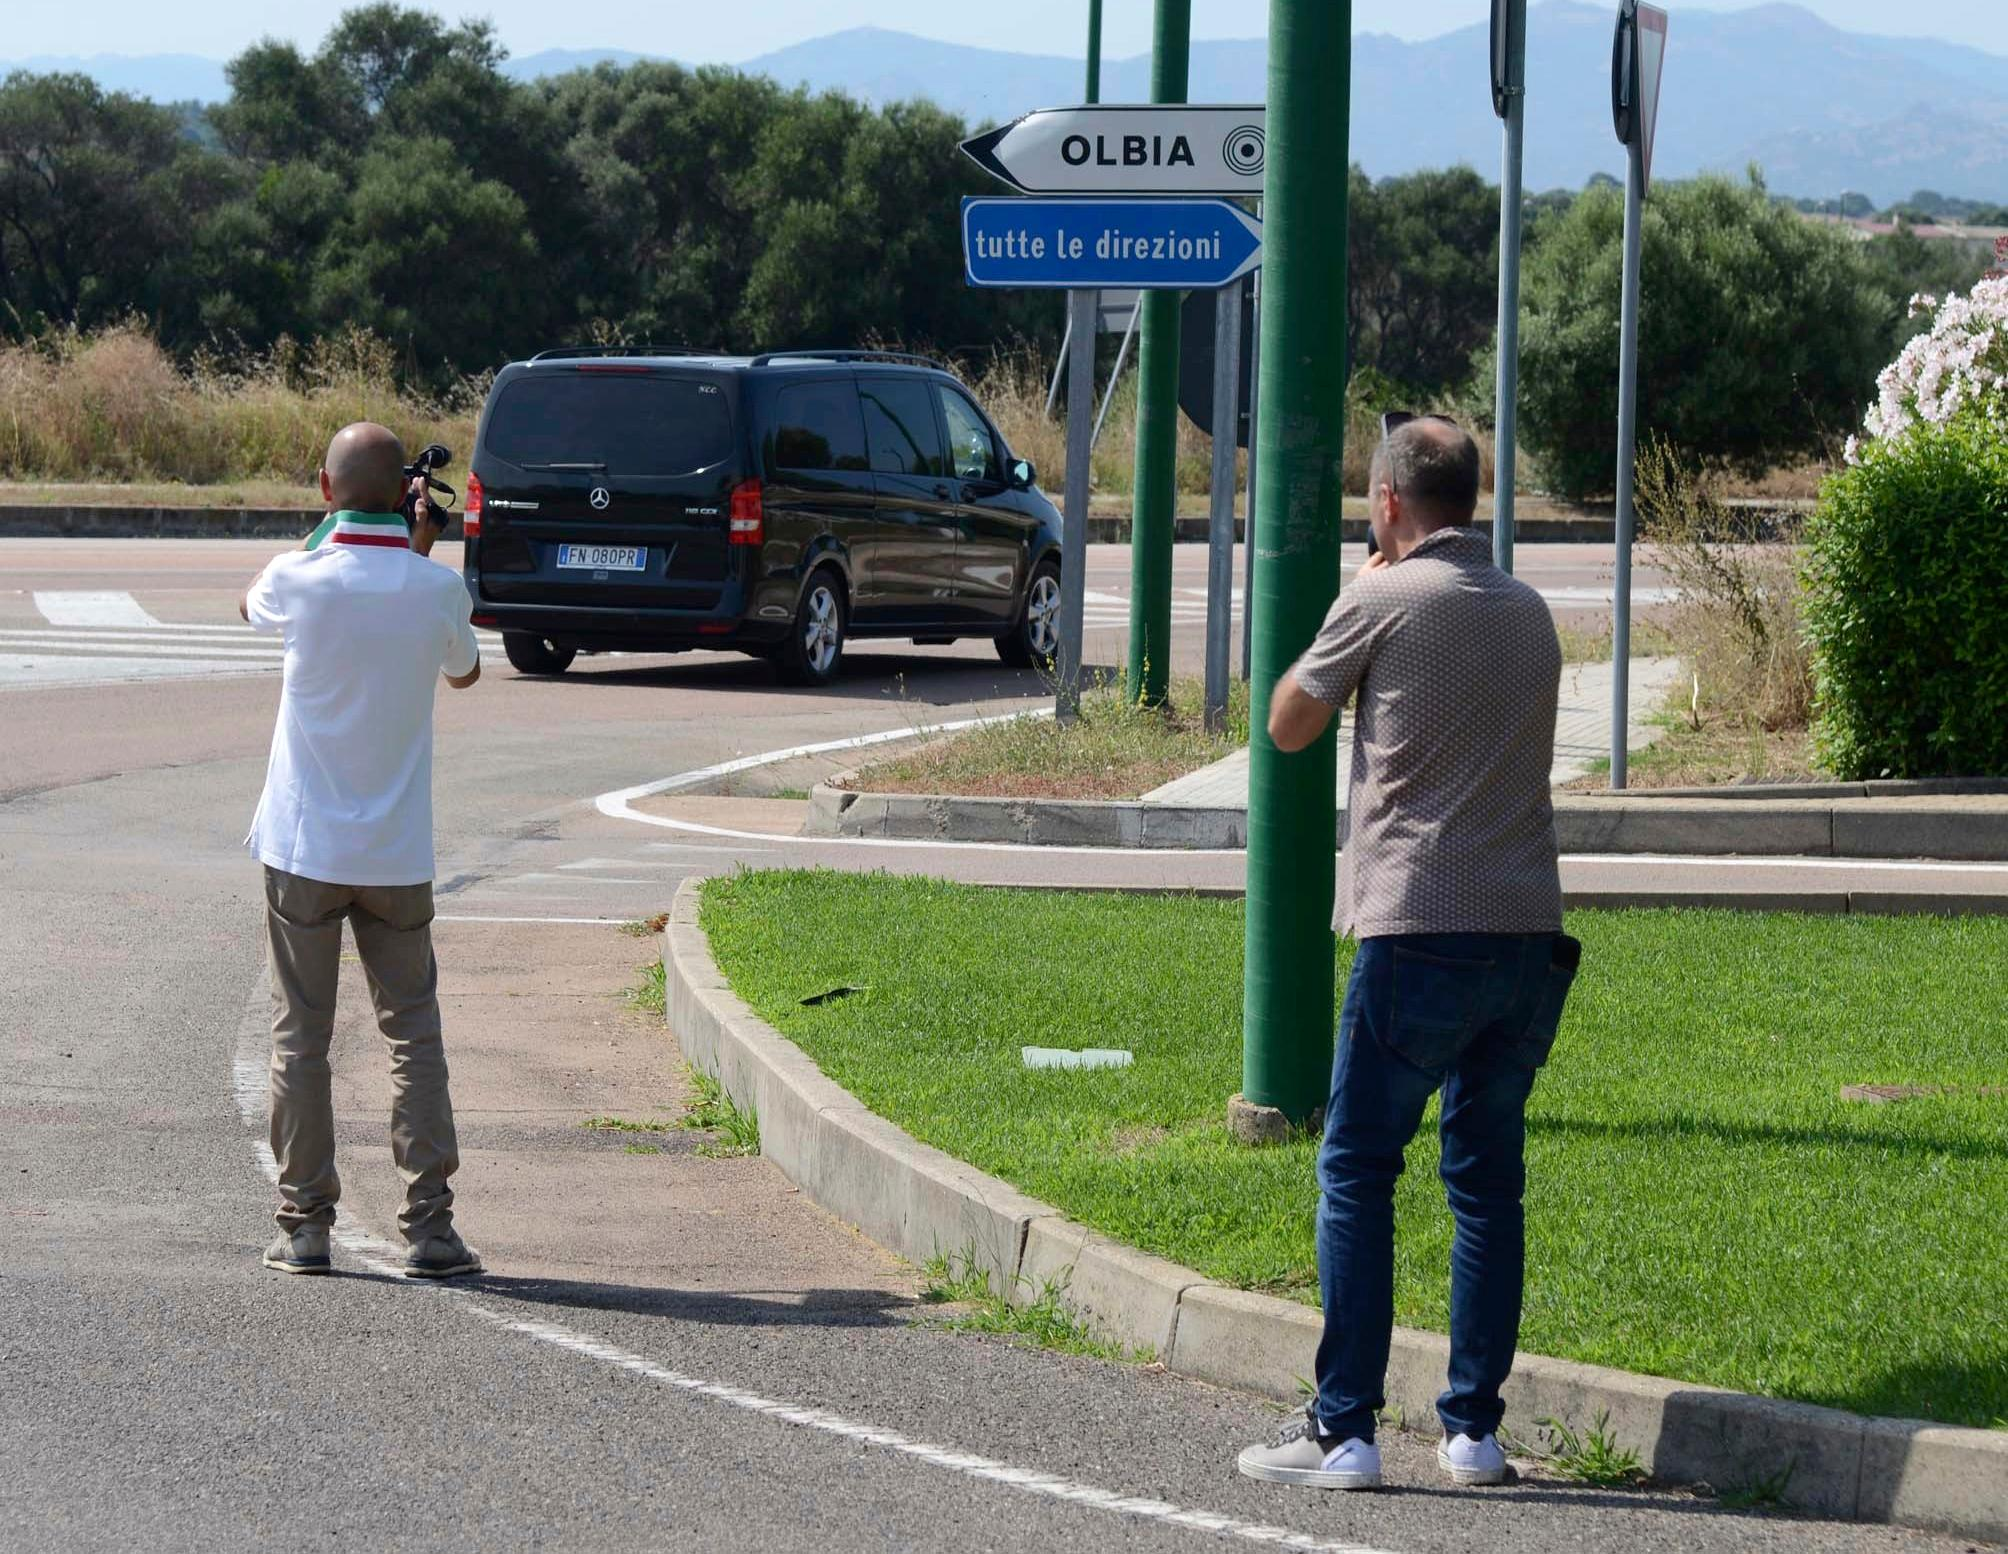 Reporters film a black van leaving the John Paul II hospital in the Sardinian town of Olbia, Italy, Tuesday, July 10, 2018. Actor George Clooney was taken to the hospital in Sardinia and released after being involved in an accident while riding his motorcycle, hospital officials said. (AP Photo/Antonio Satta)